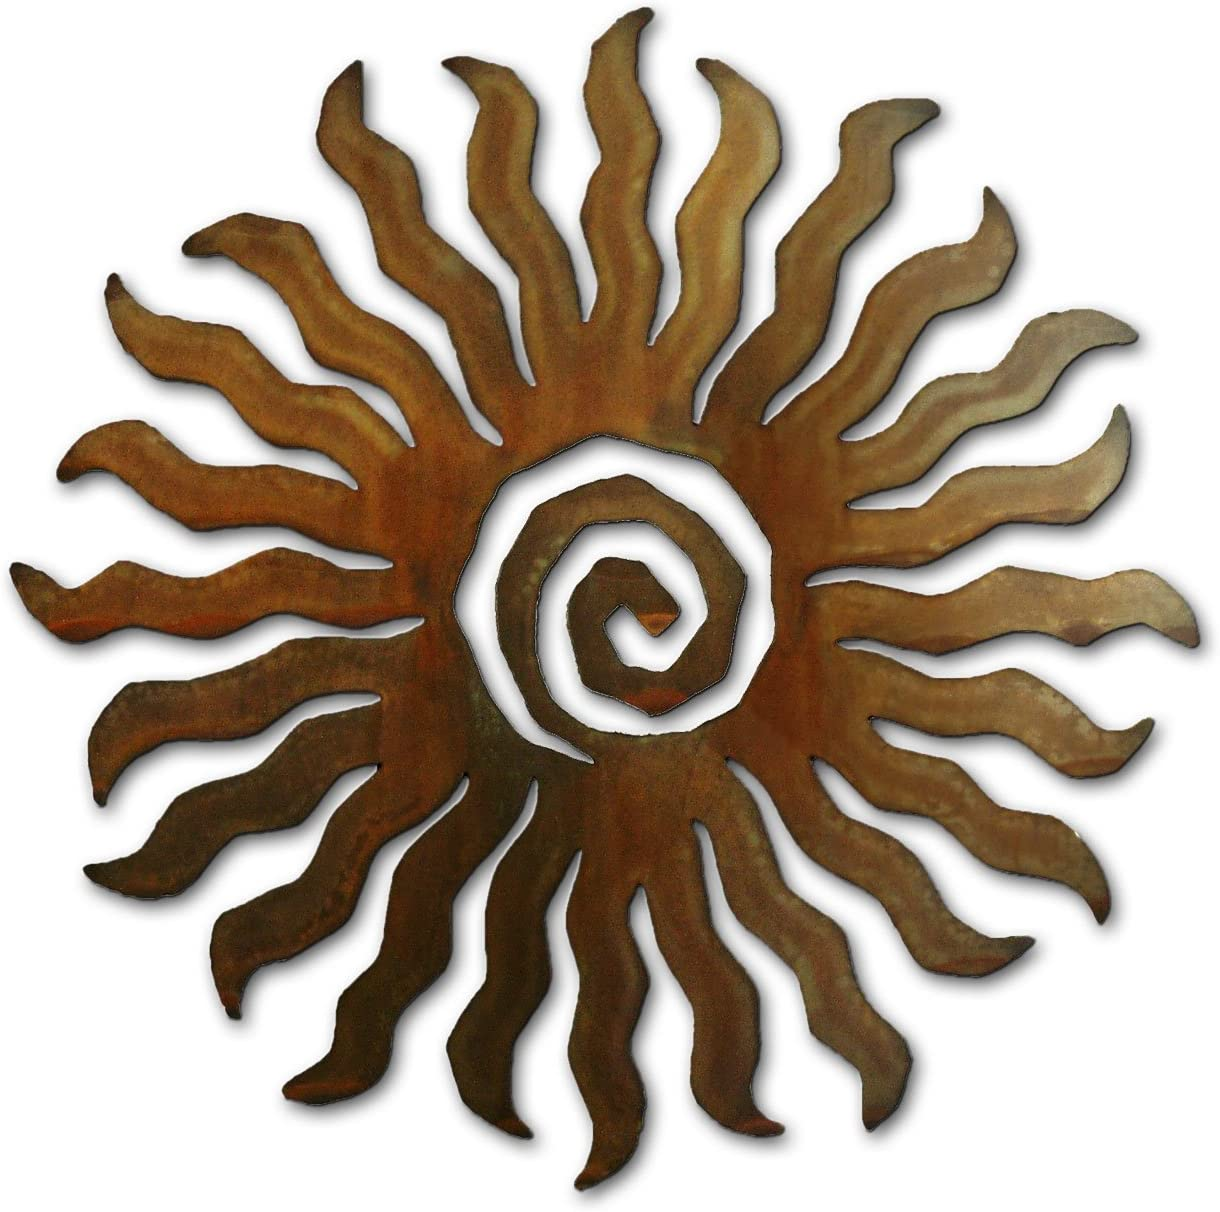 Spiral Sun – Two Dozen Rays Metal Wall Art – 18 inches – Rust Finish – Crafted in USA